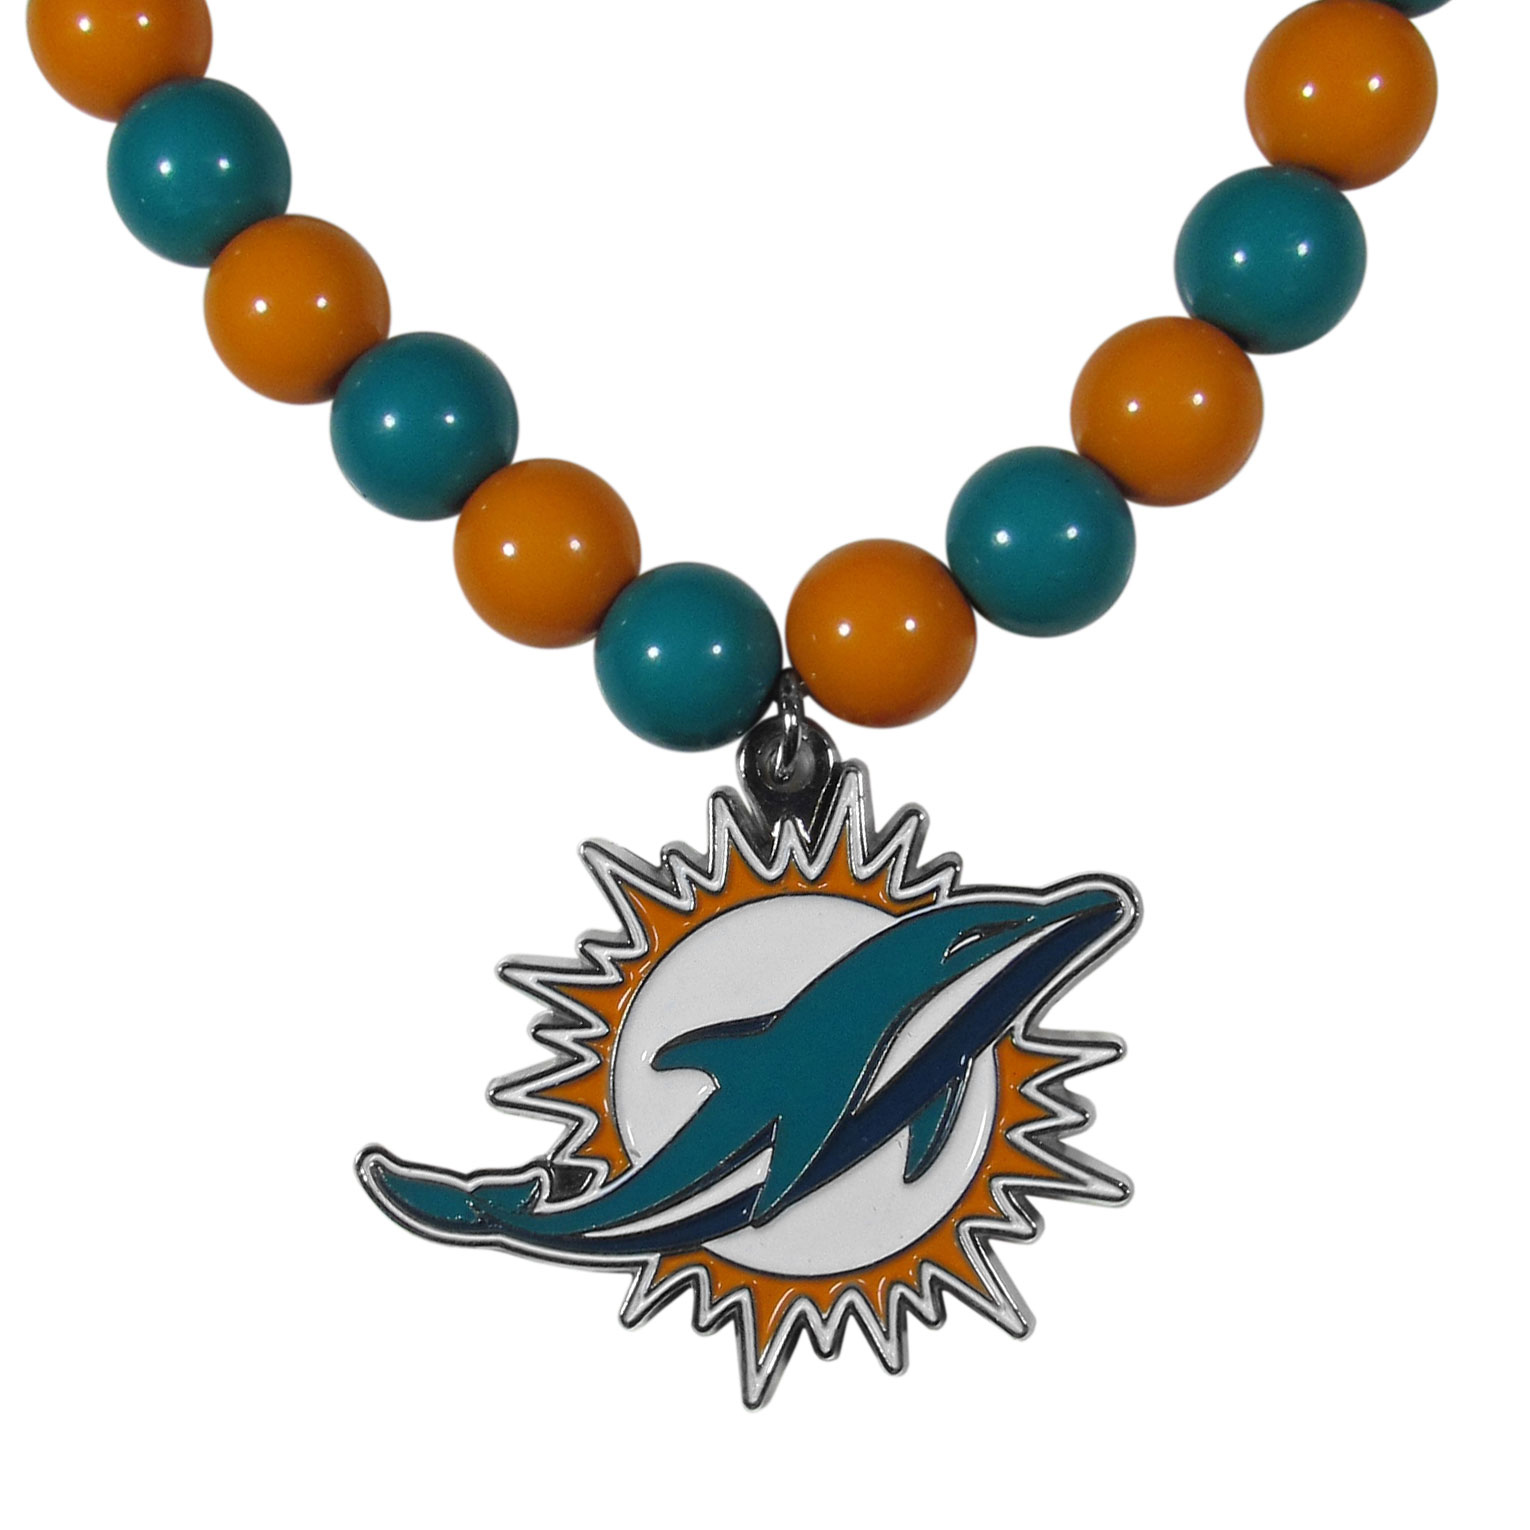 Miami Dolphins Fan Bead Necklace - Make a big statement with our fan bead necklaces! These brightly colored necklace have a 24 inch string of alternating colored beads with an extra large, high-polish Miami Dolphins pendant.